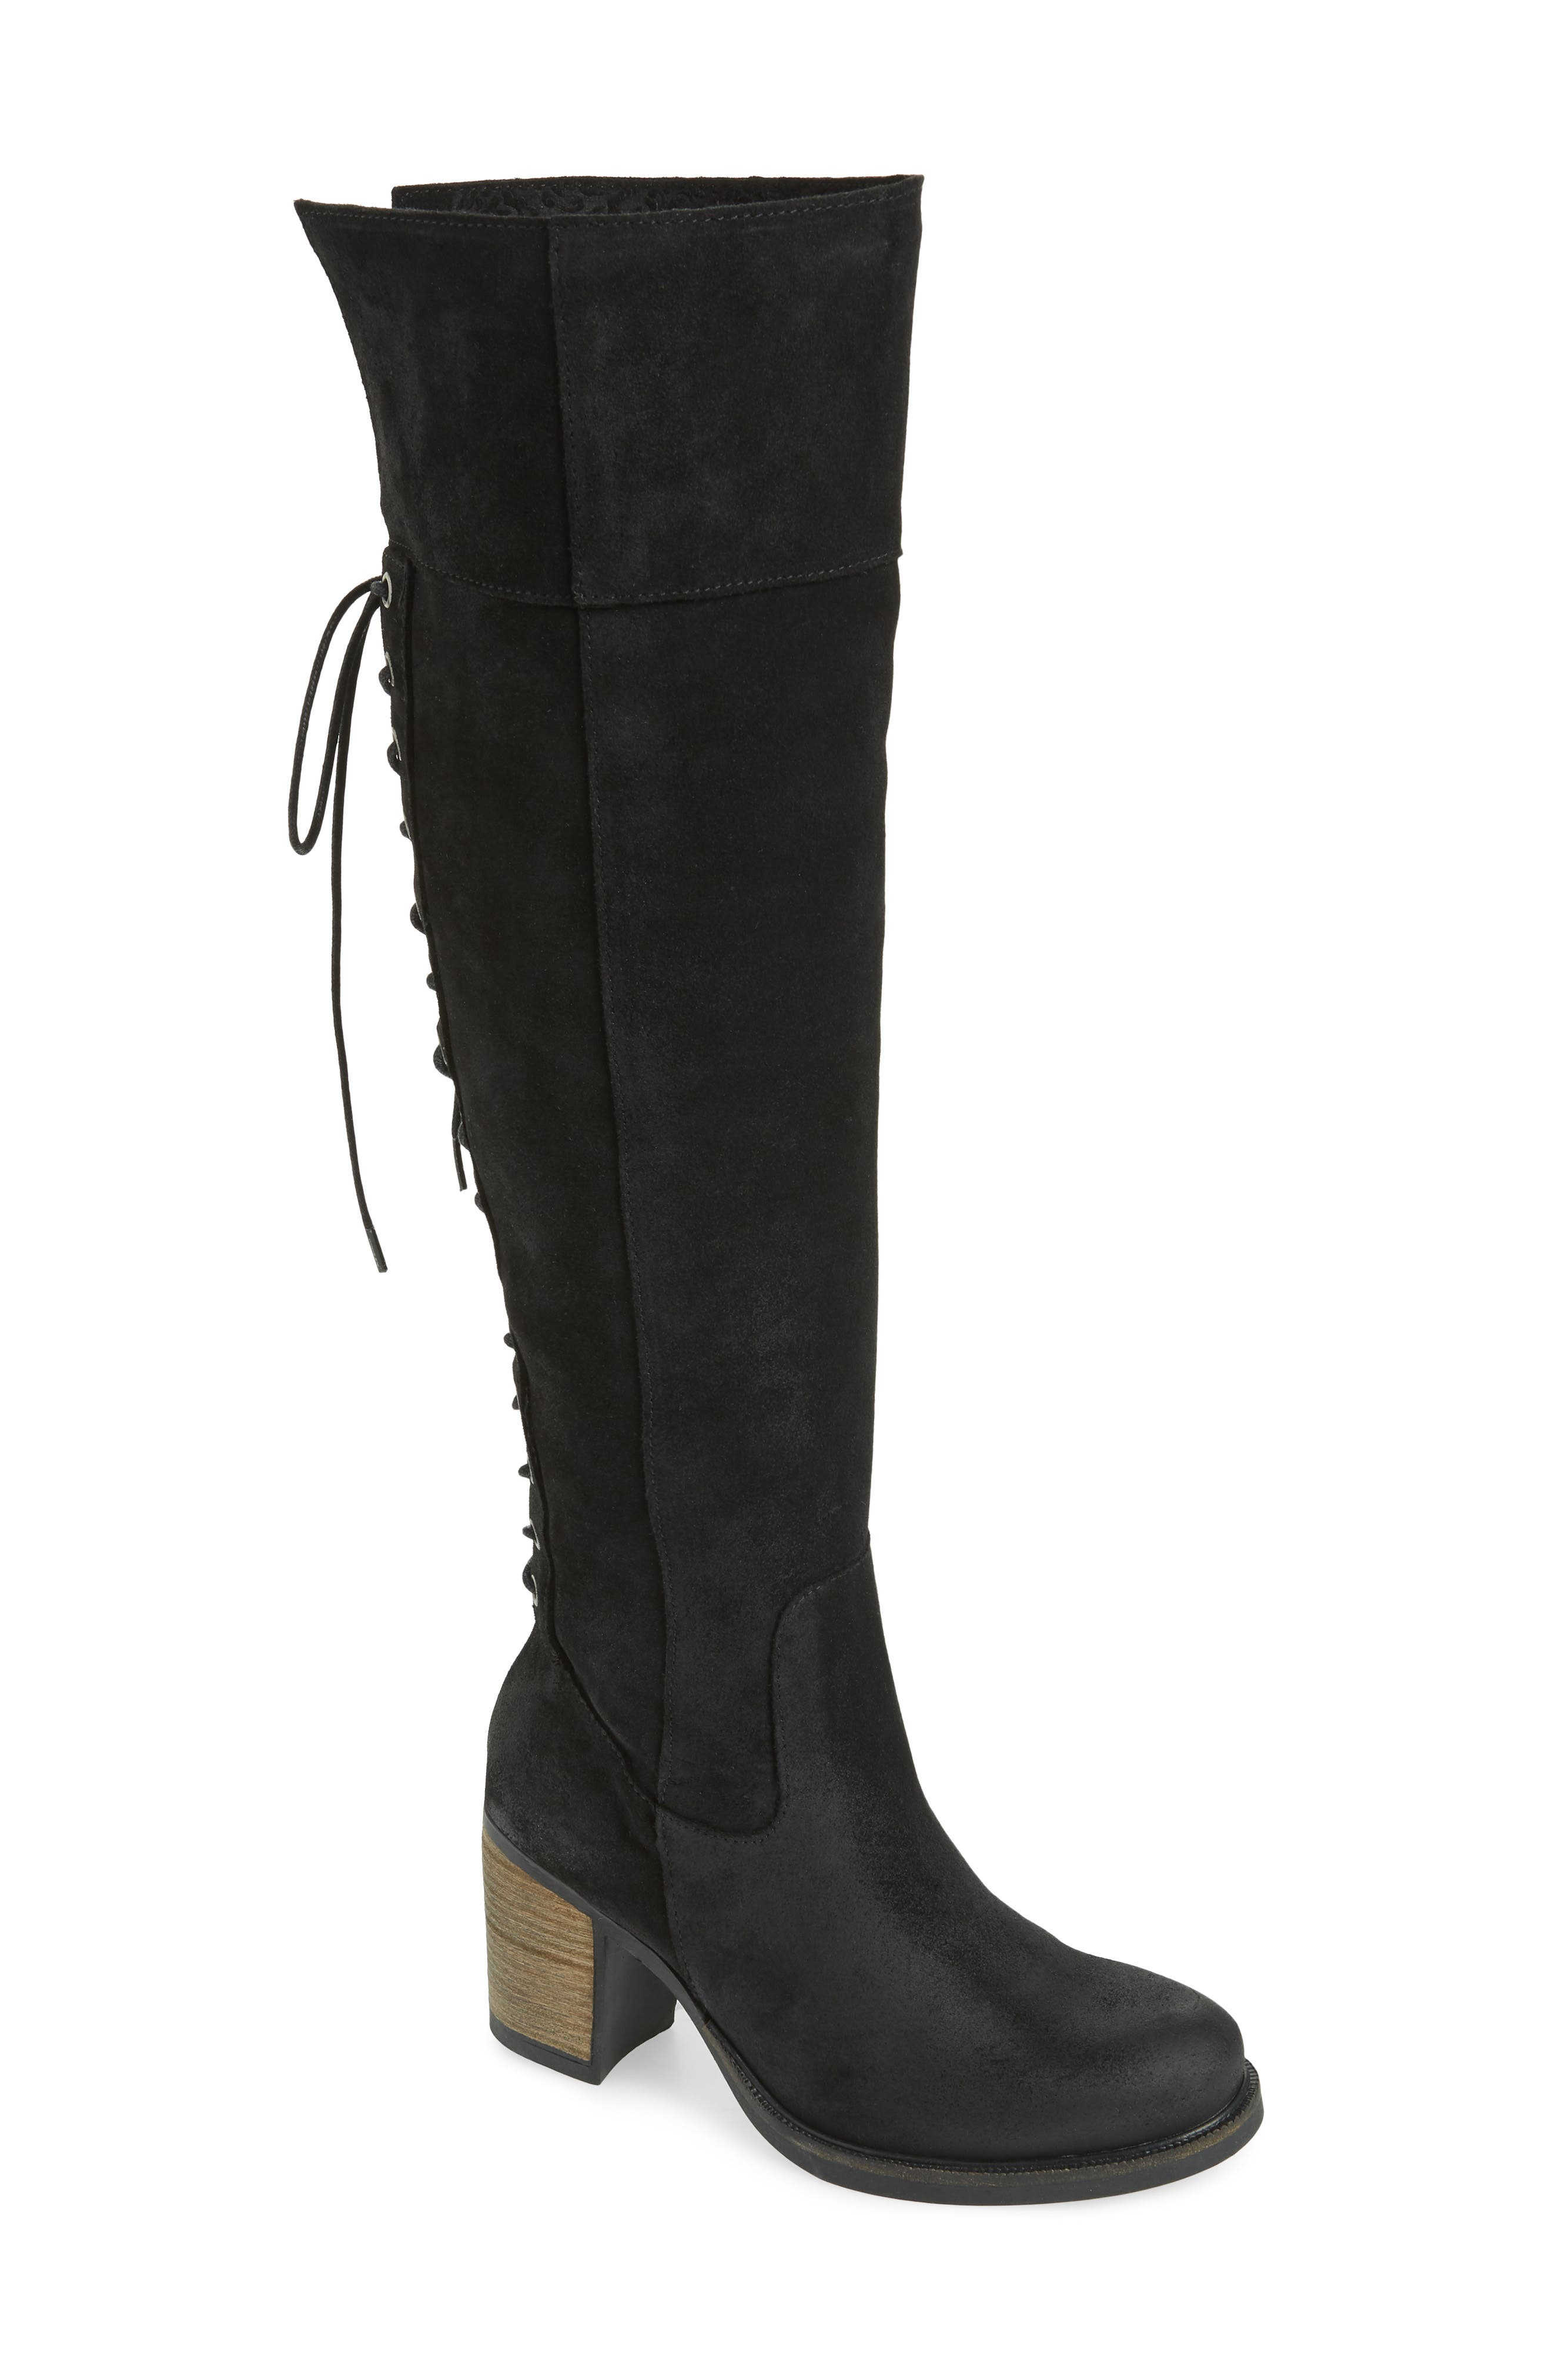 Bos. & Co. Bond Waterproof Over-The-Knee Boot - Black